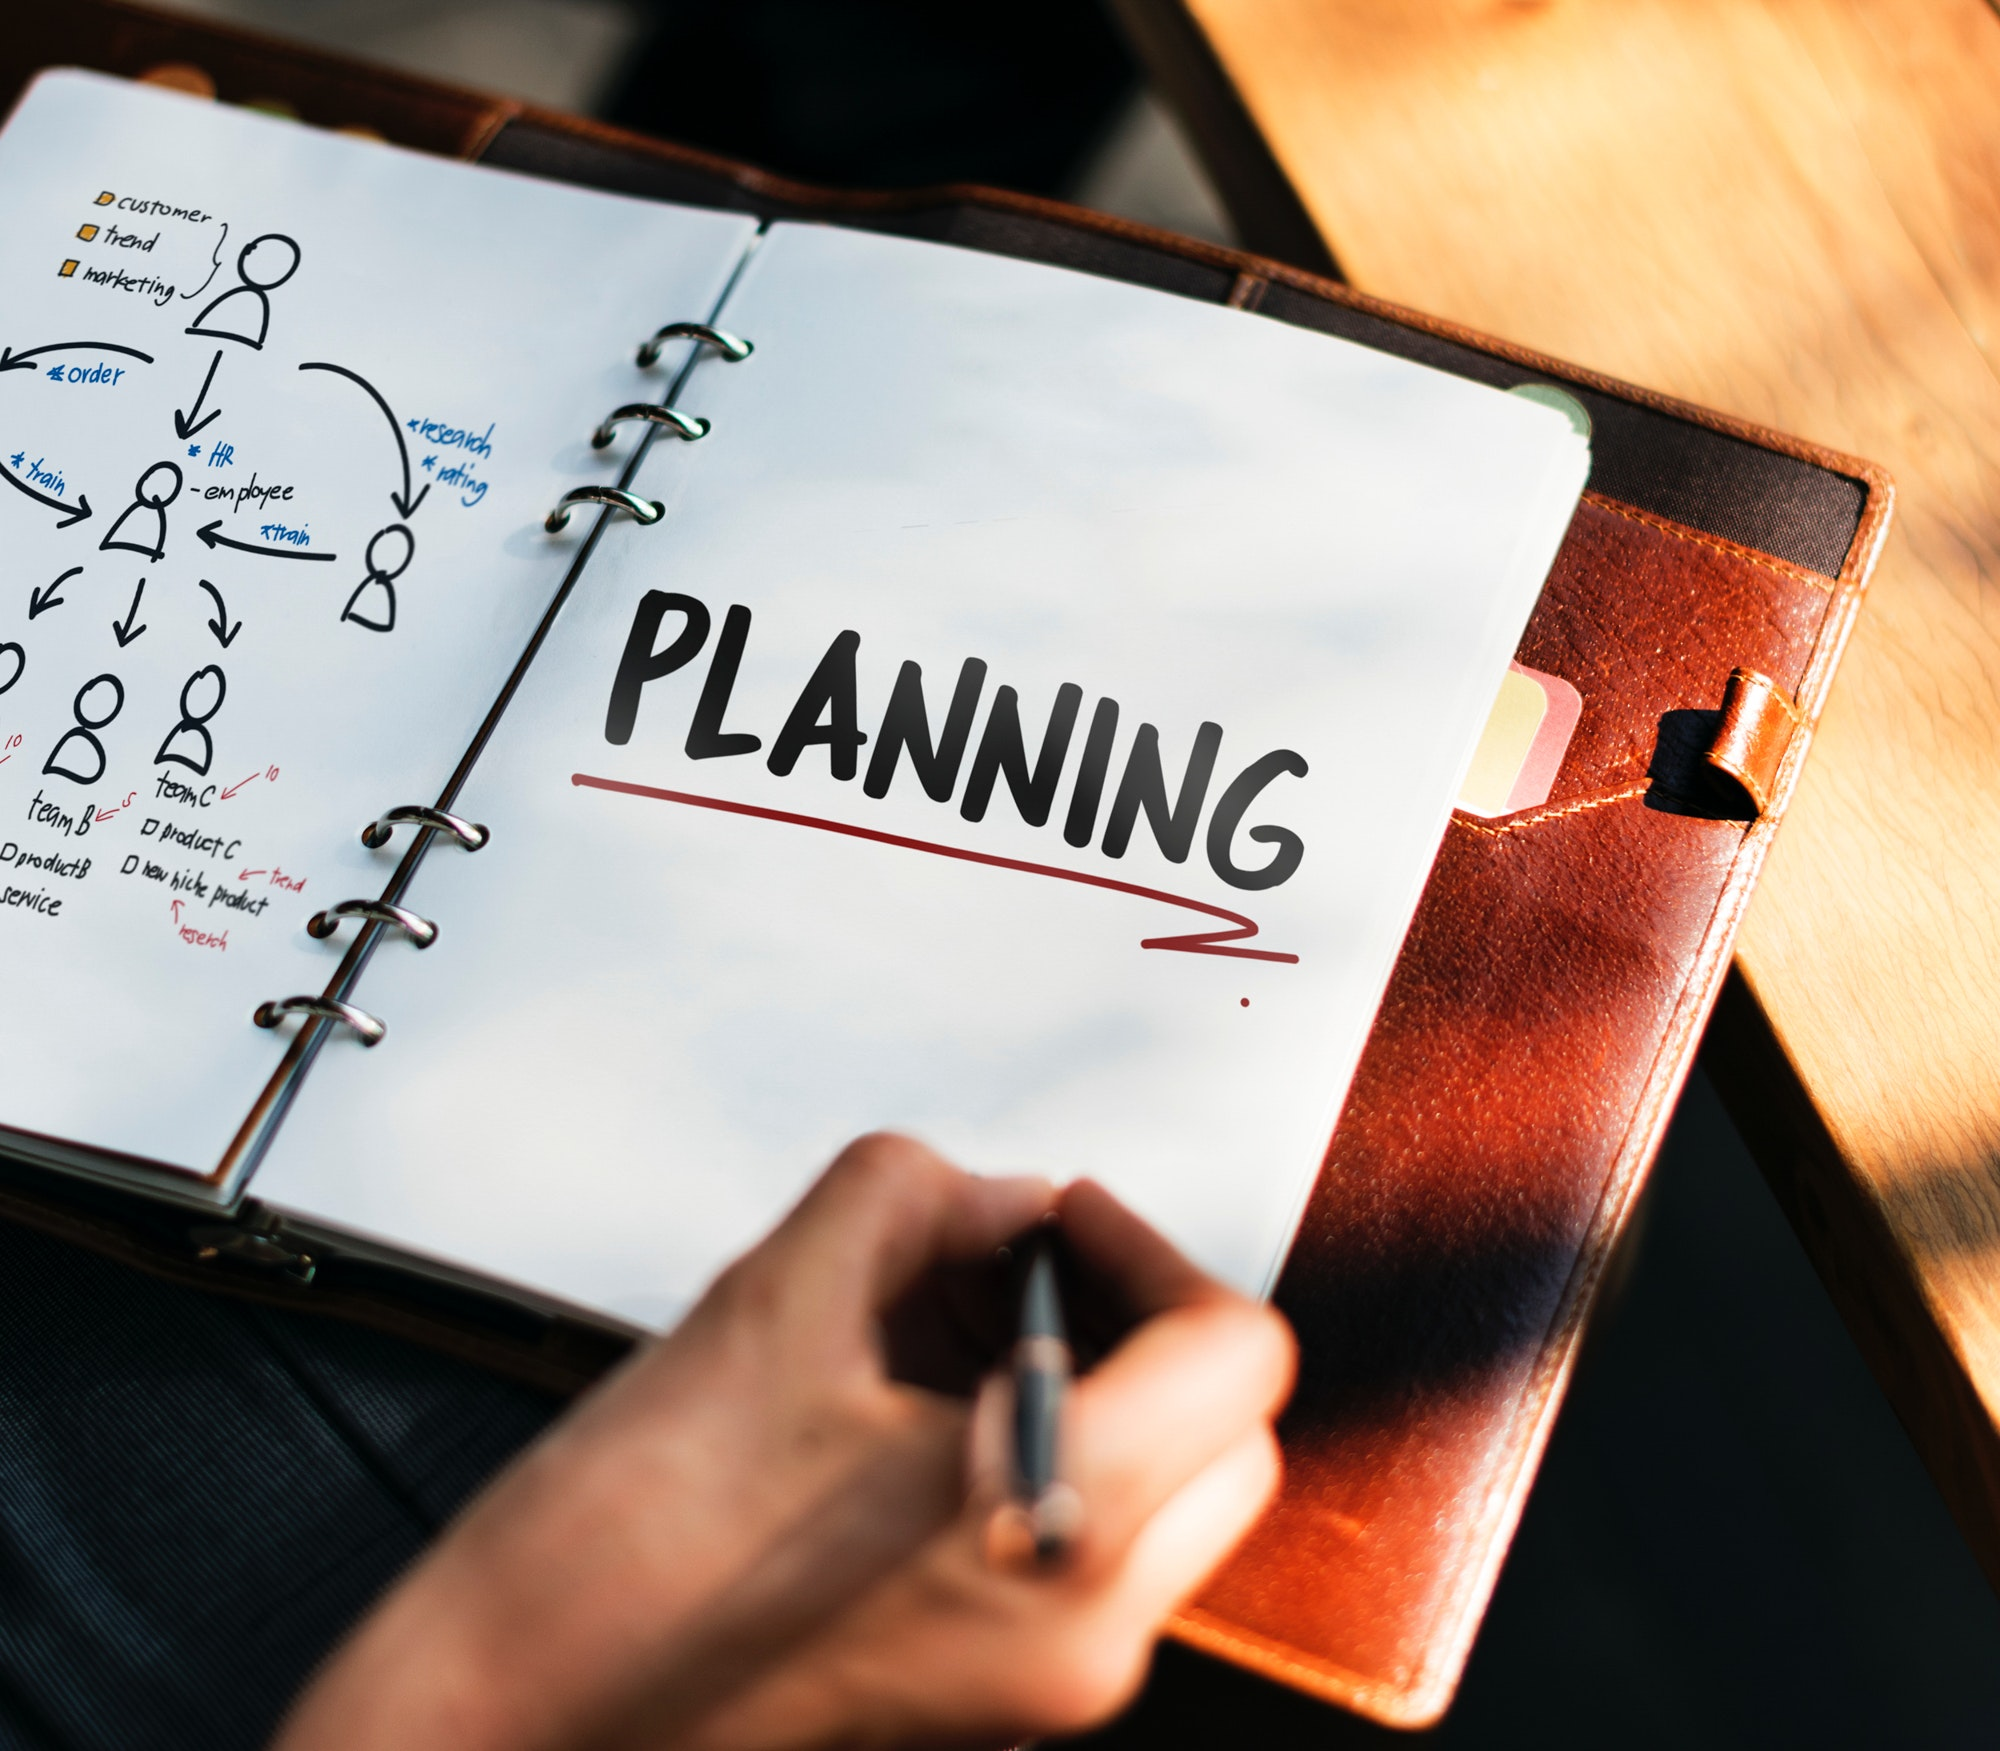 A project requires initiation, planning, execution, control, and proper documentation to ensure specific goals are properly achieved.  Your business projects are a business investment with both time and materials allocated.  We can help you get the best possible ROI through proper project management.